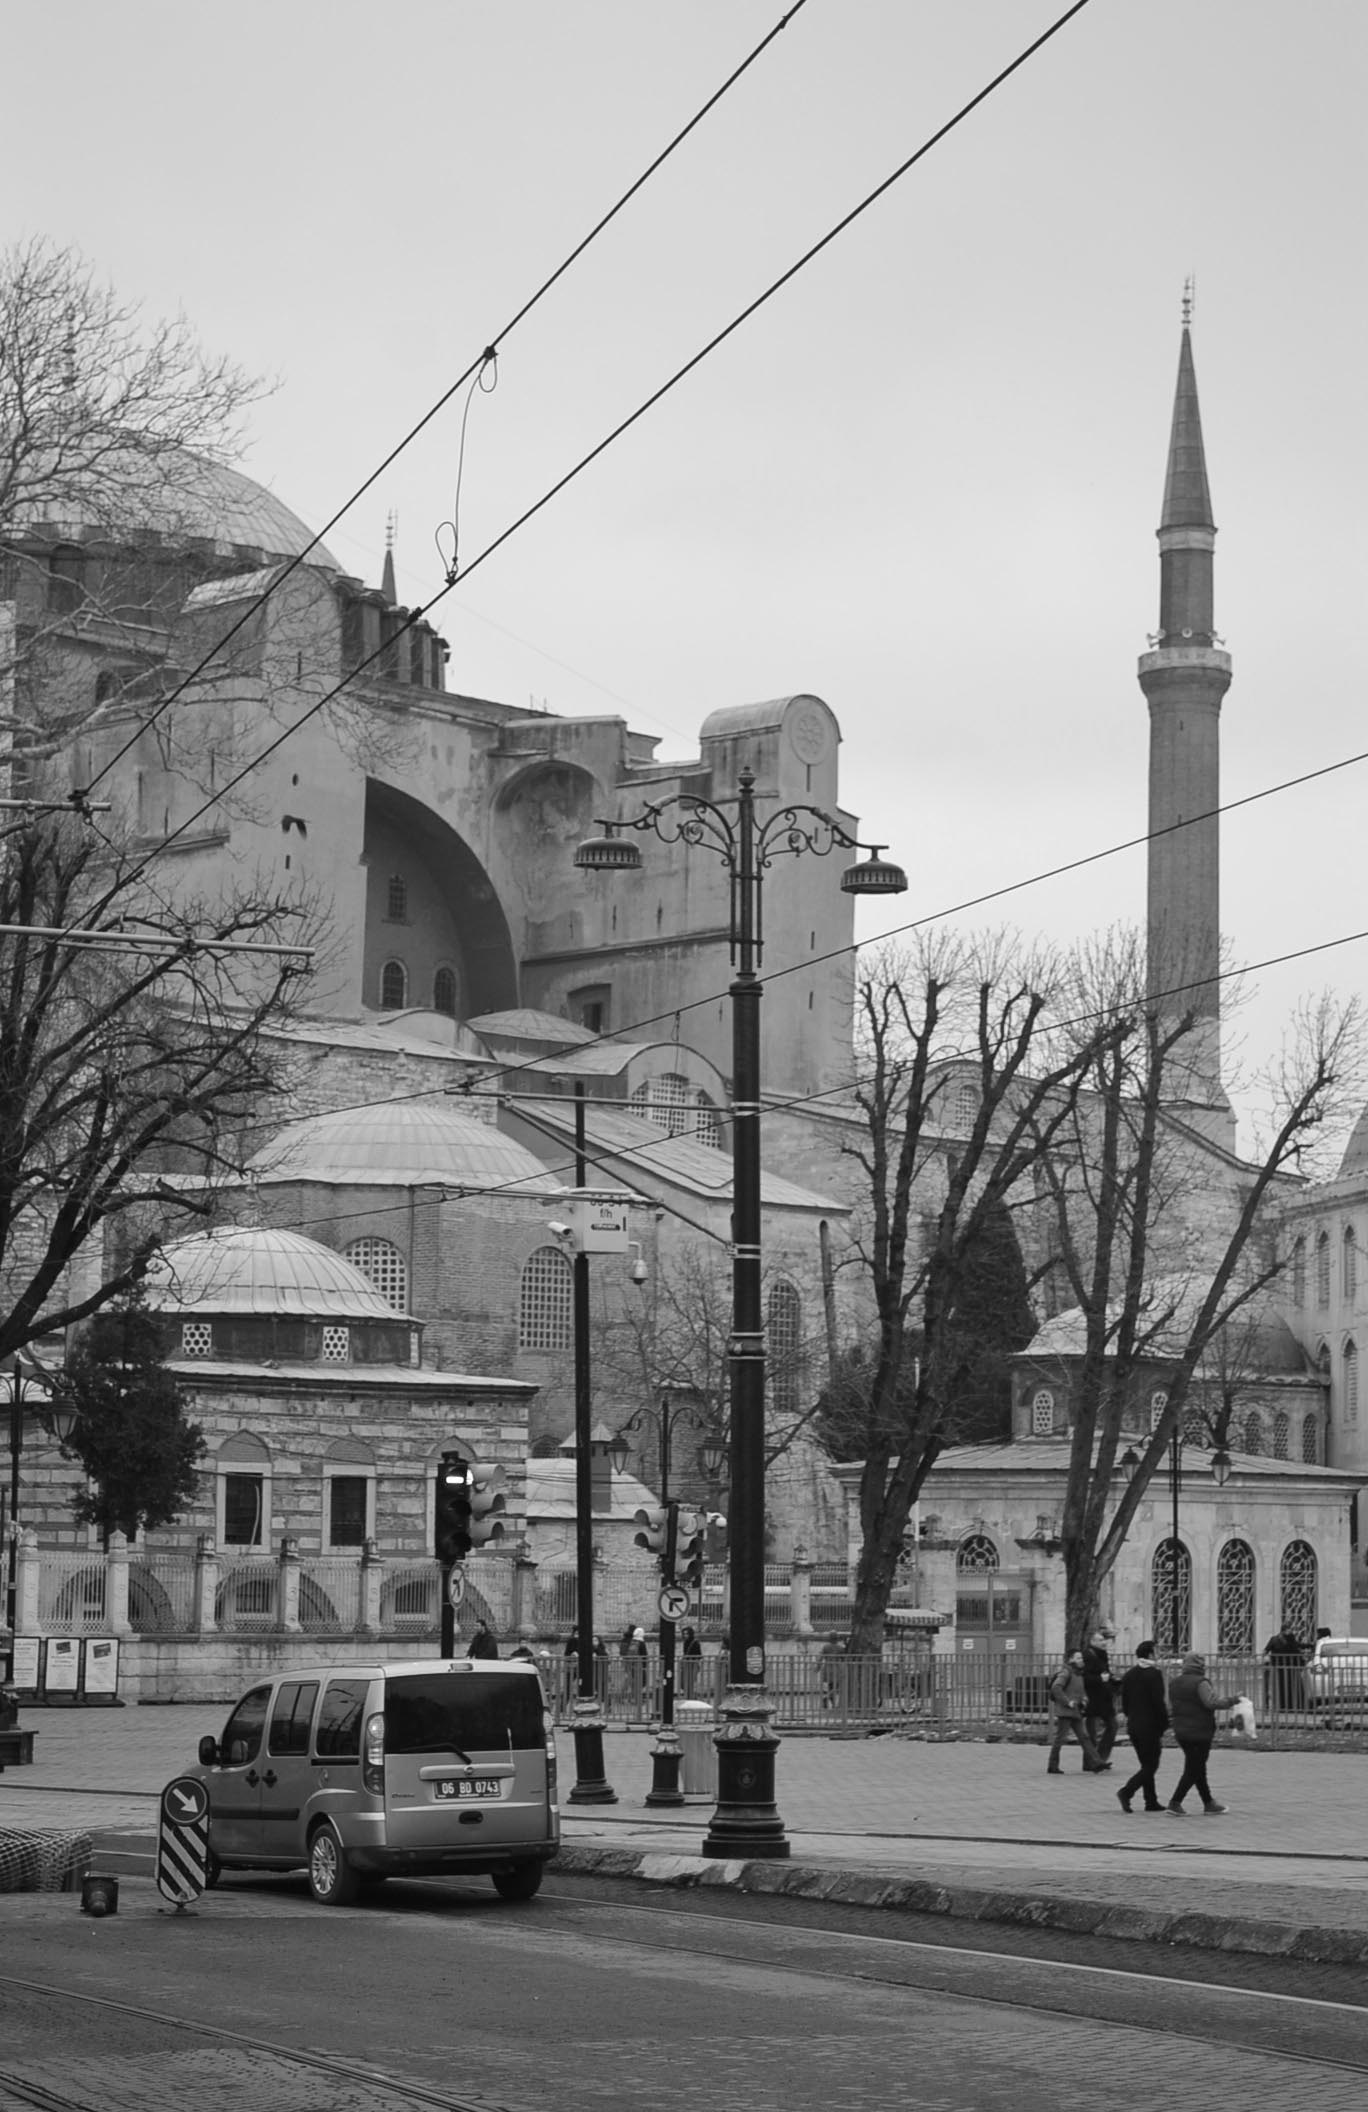 hagia sophia_enmeshed in newer apparatuses of control__pic by Richa